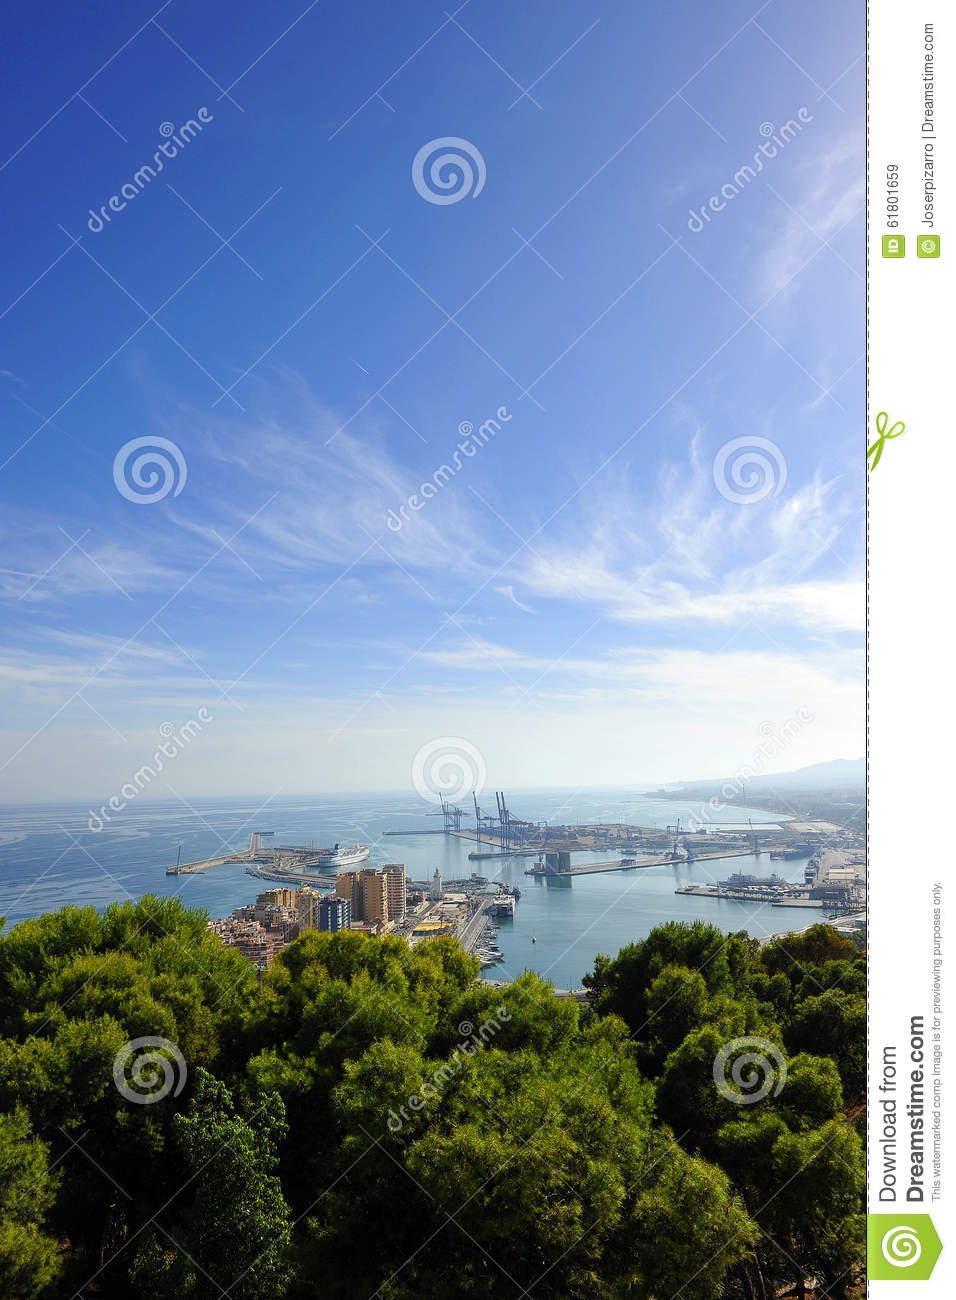 Panoramic view of the port of Malaga, Andalusia, Spain